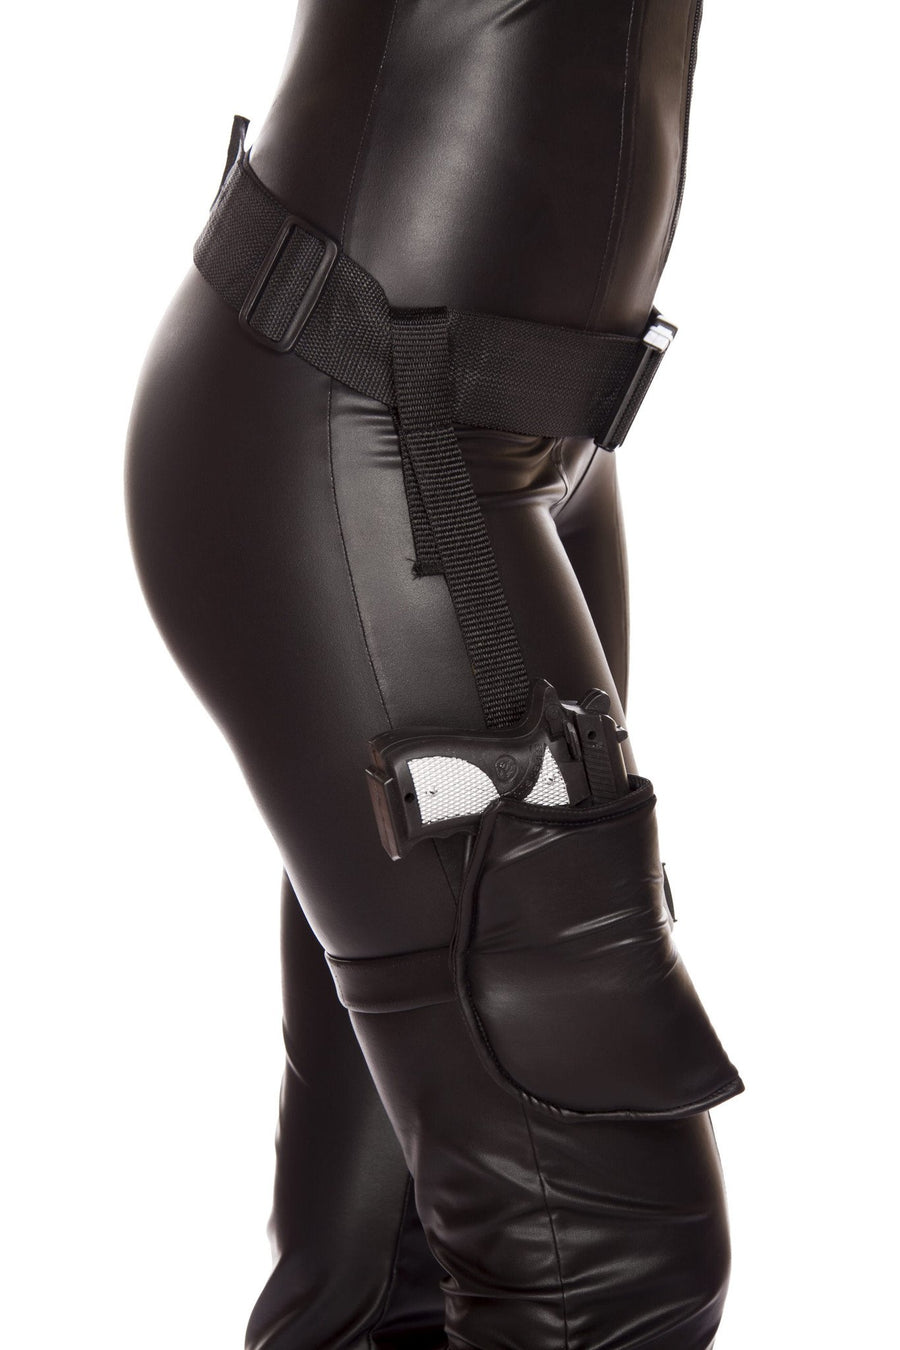 G4570 Leg Holster with Connected Belt (Gun Not Included)